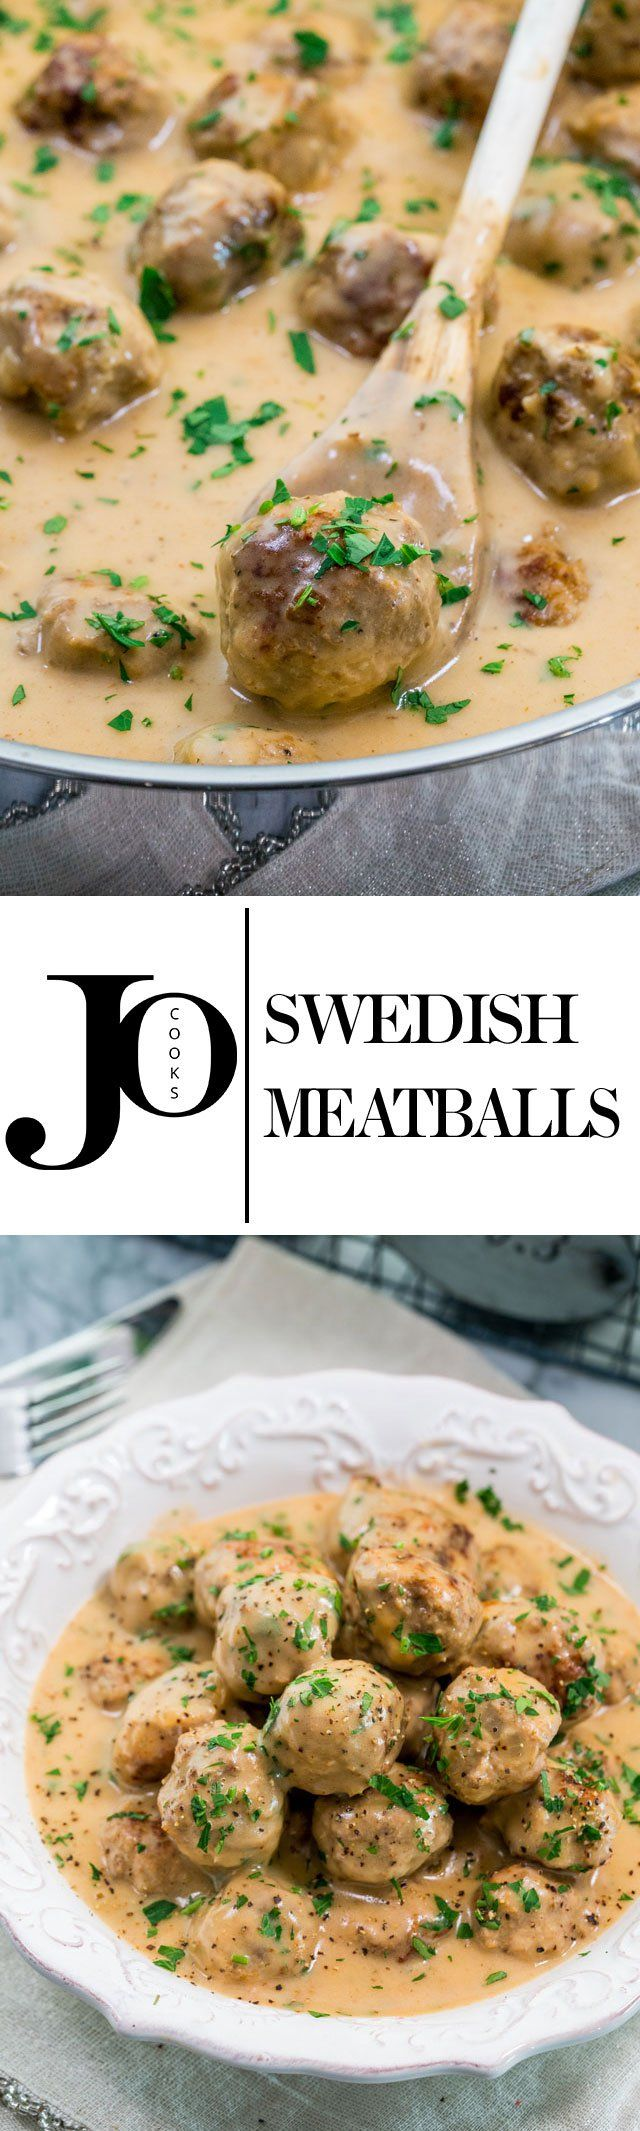 Swedish Meatballs - the mother of all meatballs. Learn how to make these amazing Swedish meatballs with a delicious and tasty gravy!